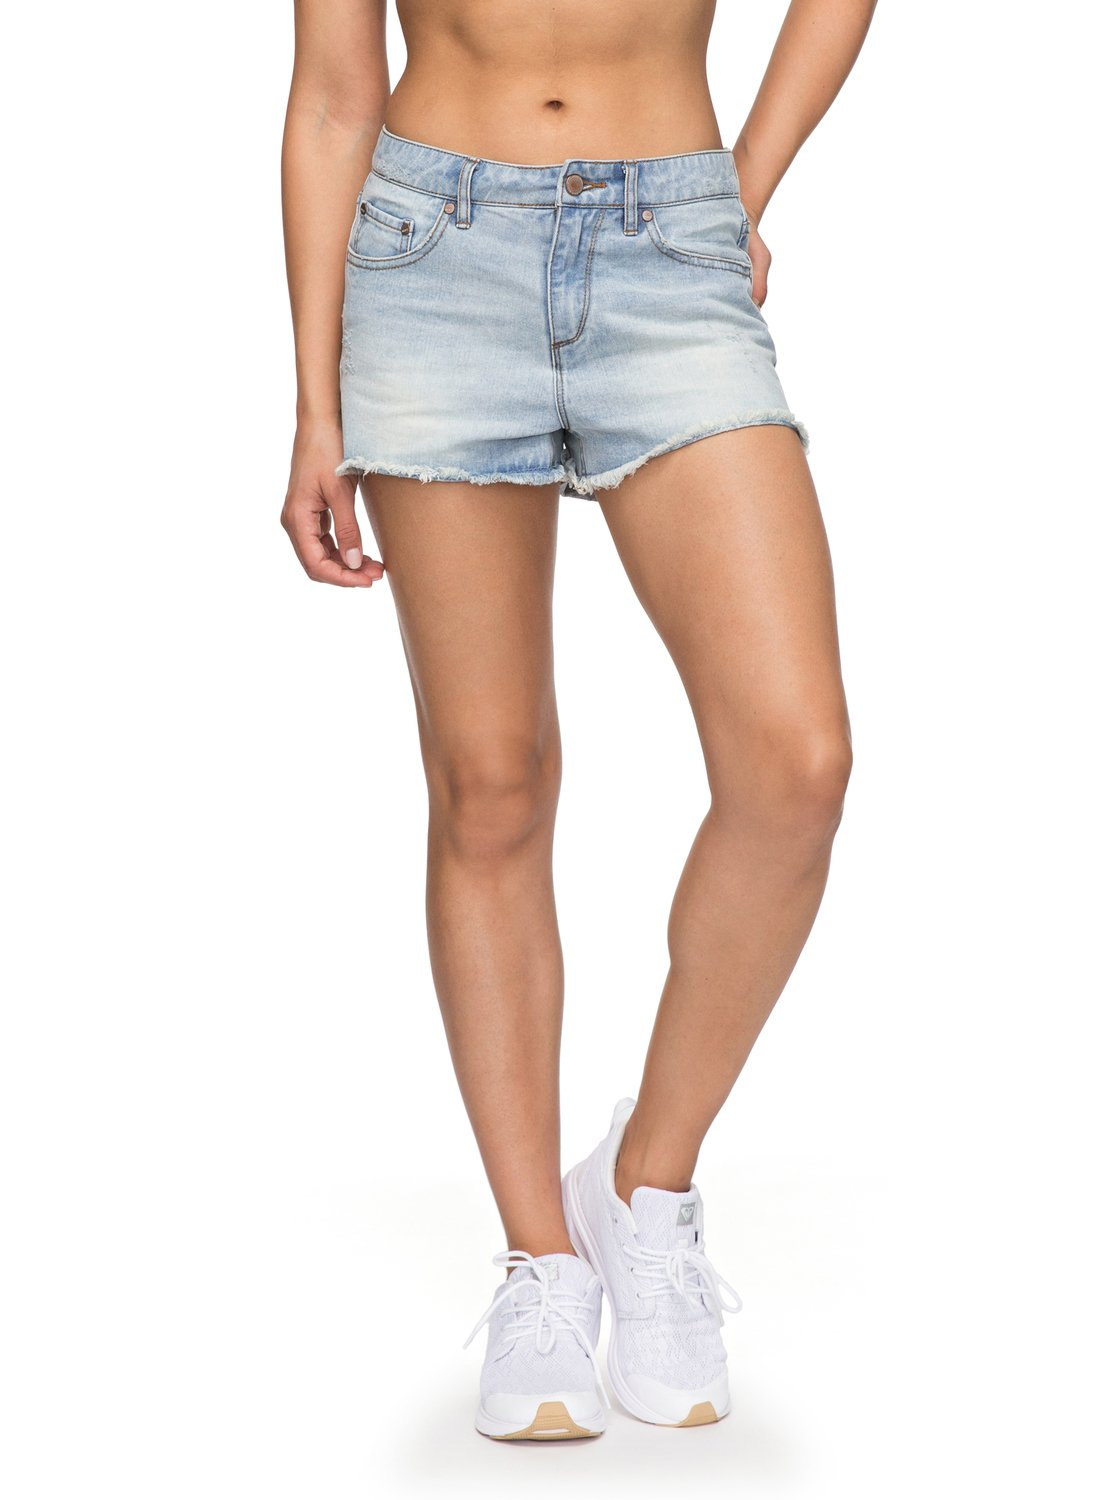 Roxy Little 1 Short Azul Abaco Mujer ERJDS03156 Vaquero para 8dq7rdw